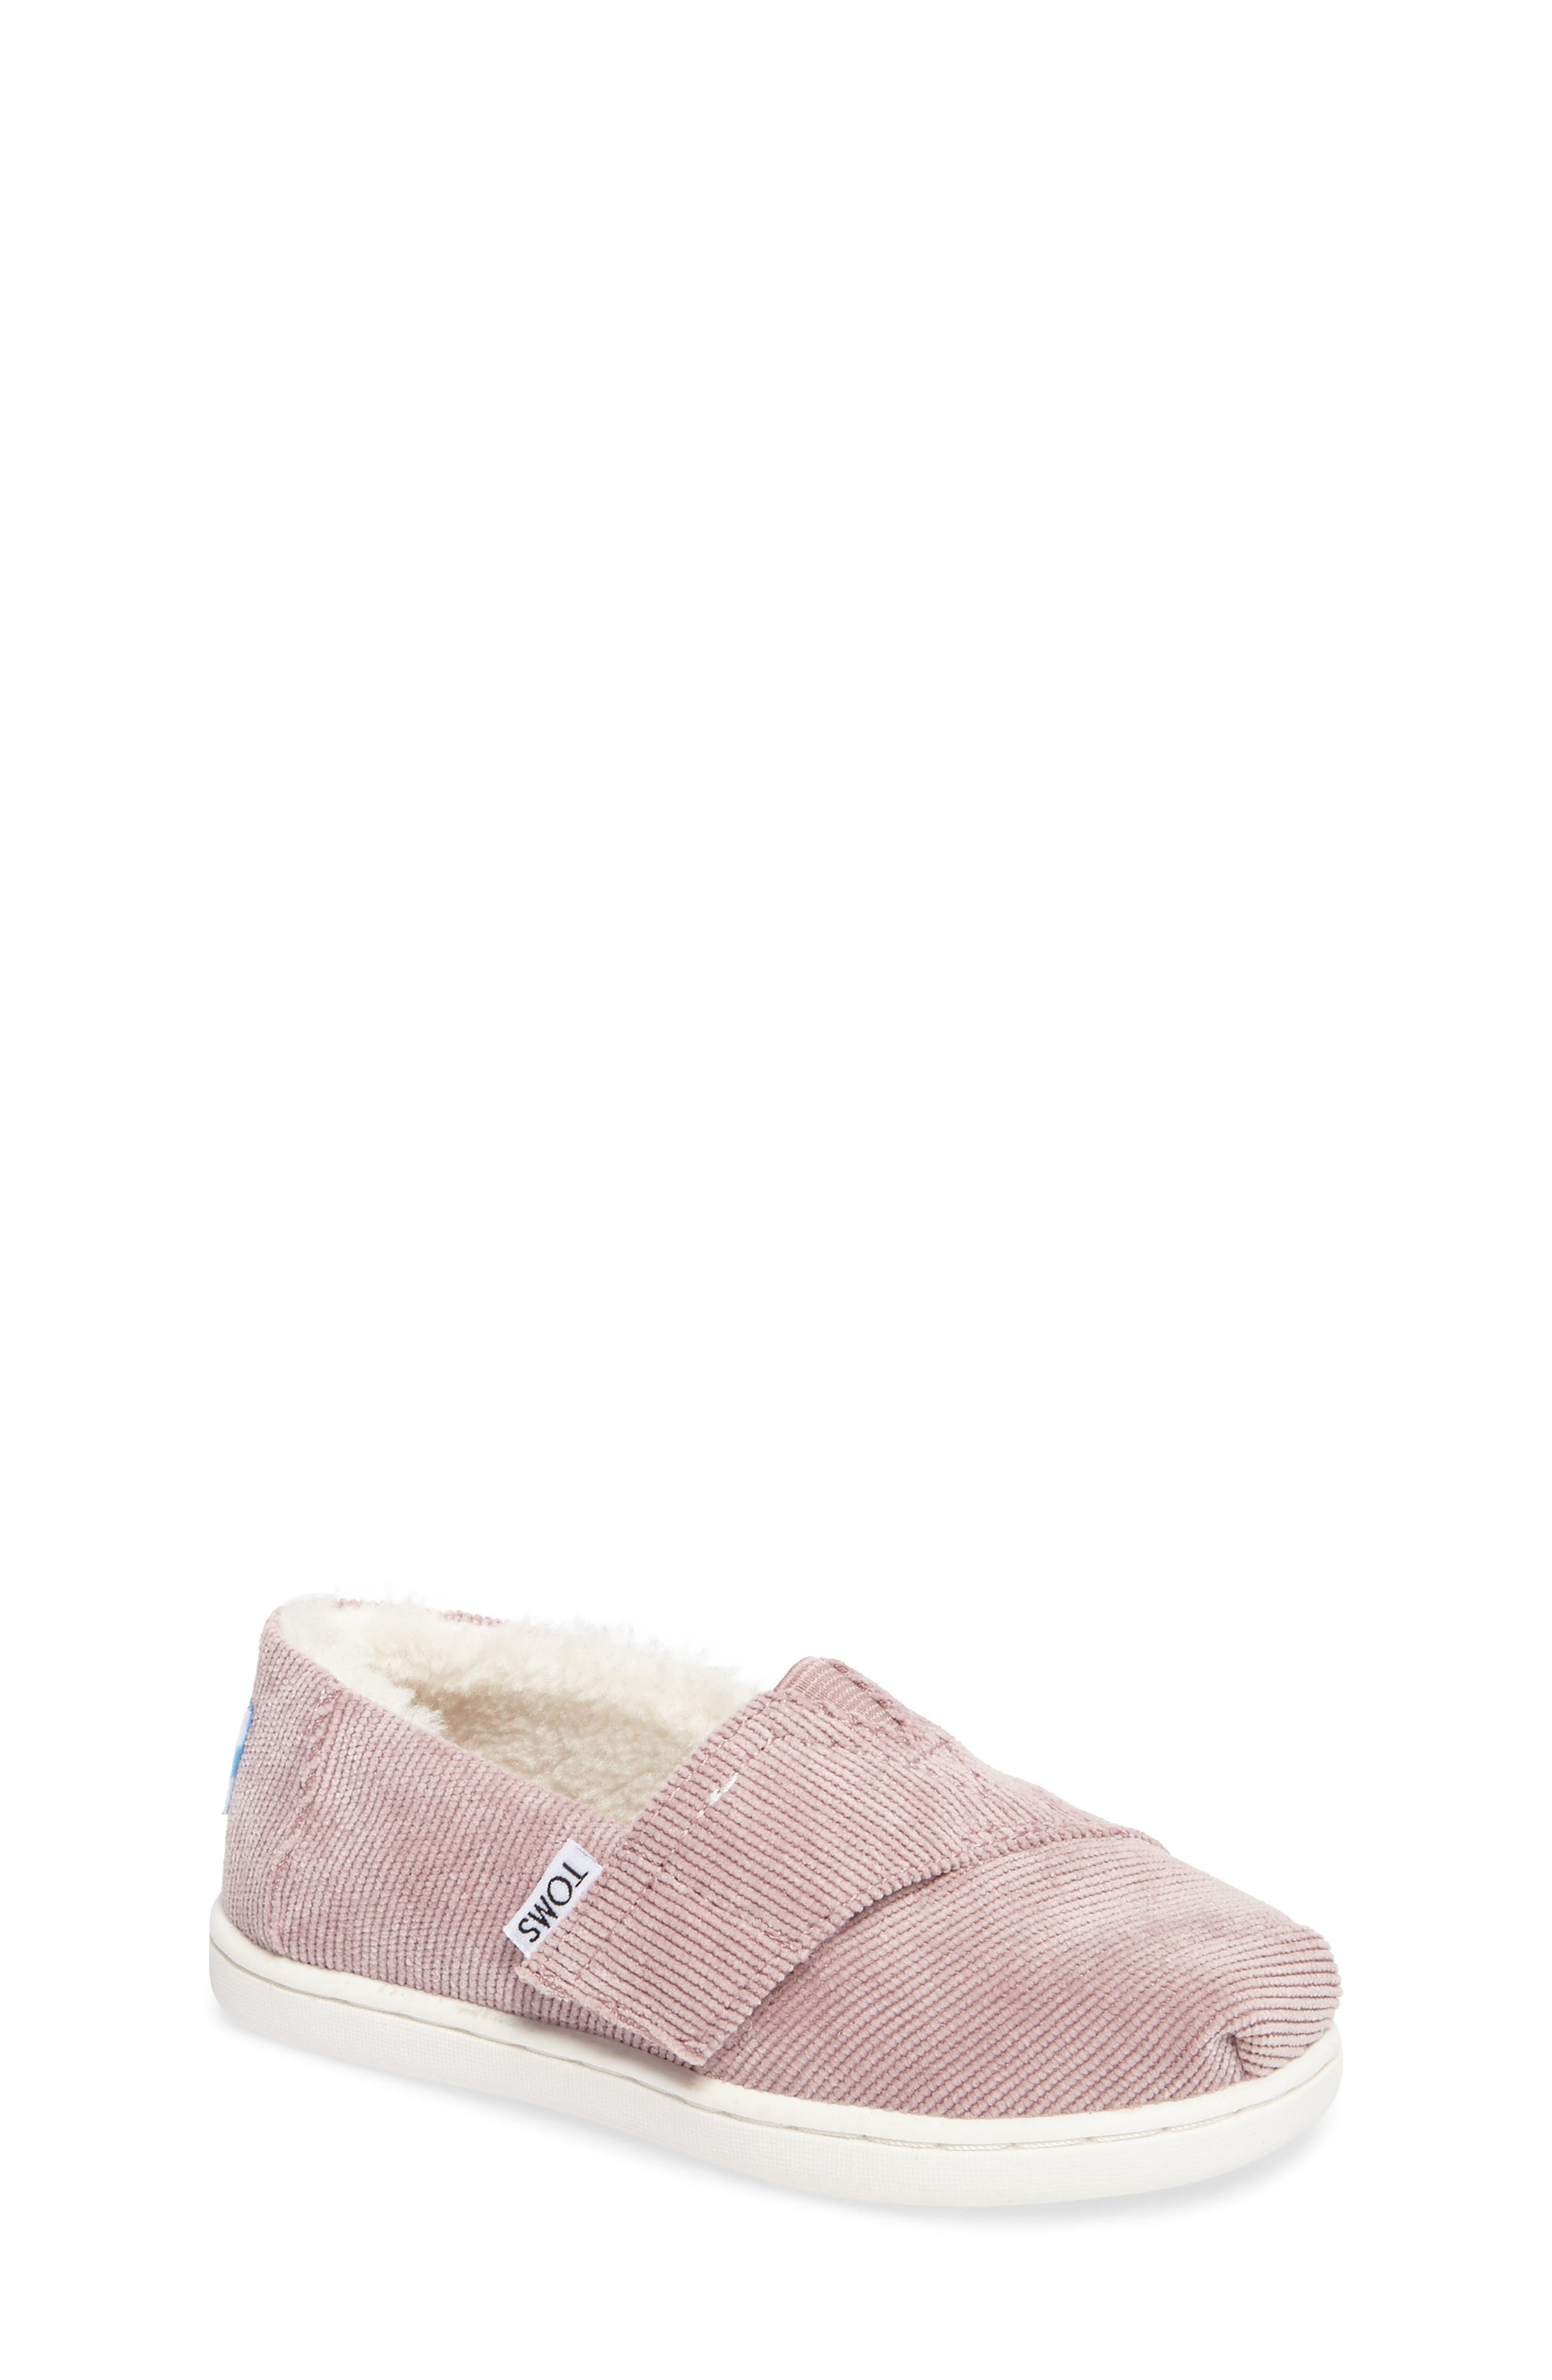 Classic - Tiny Herringbone Faux Shearling Lined Slip-On,                         Main,                         color, Rose Corduroy/ Faux Shearling